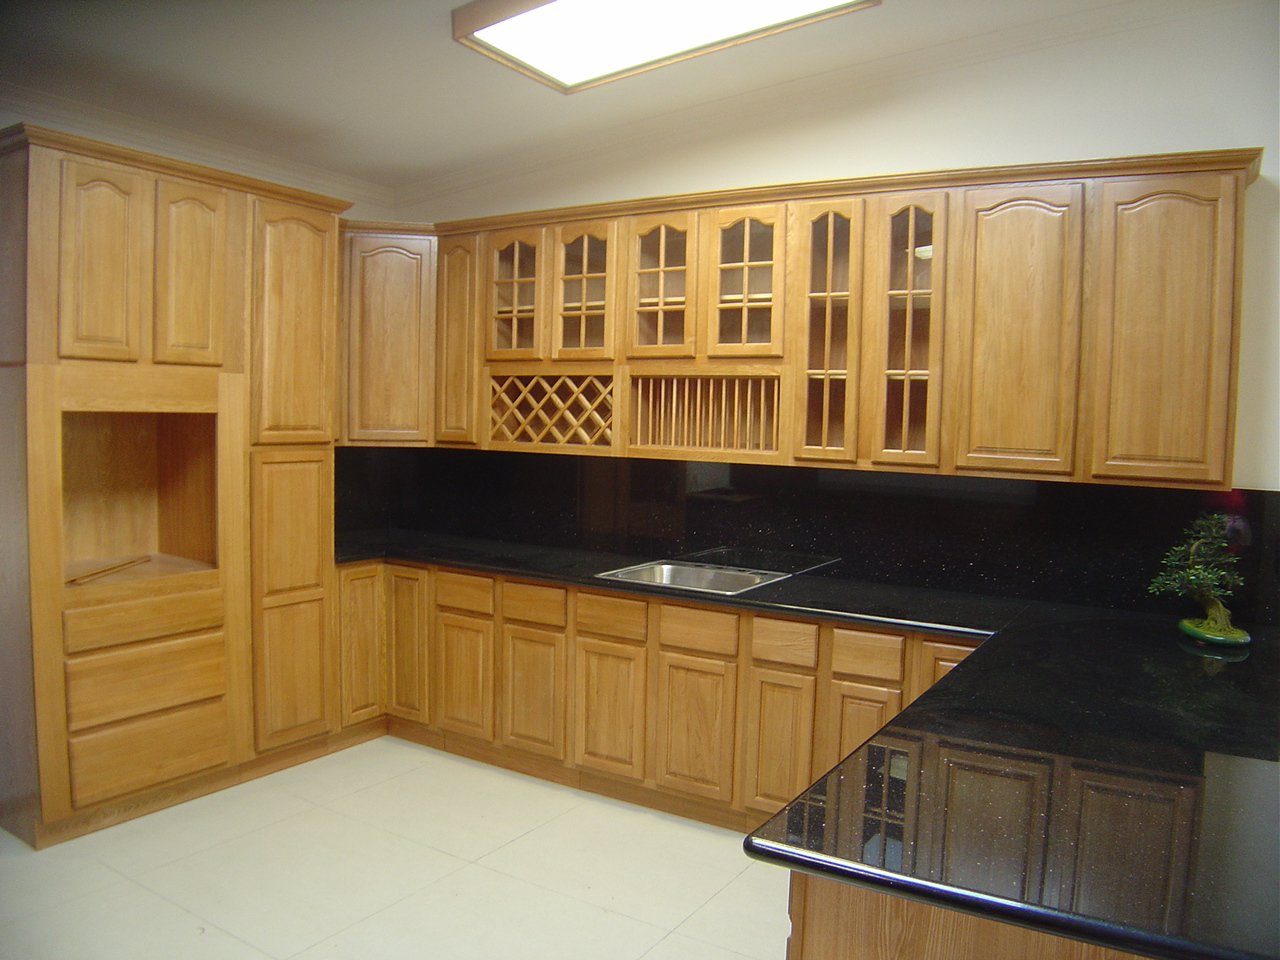 Top Kitchen Design Ideas with Oak Cabinets 1280 x 960 · 557 kB · jpeg